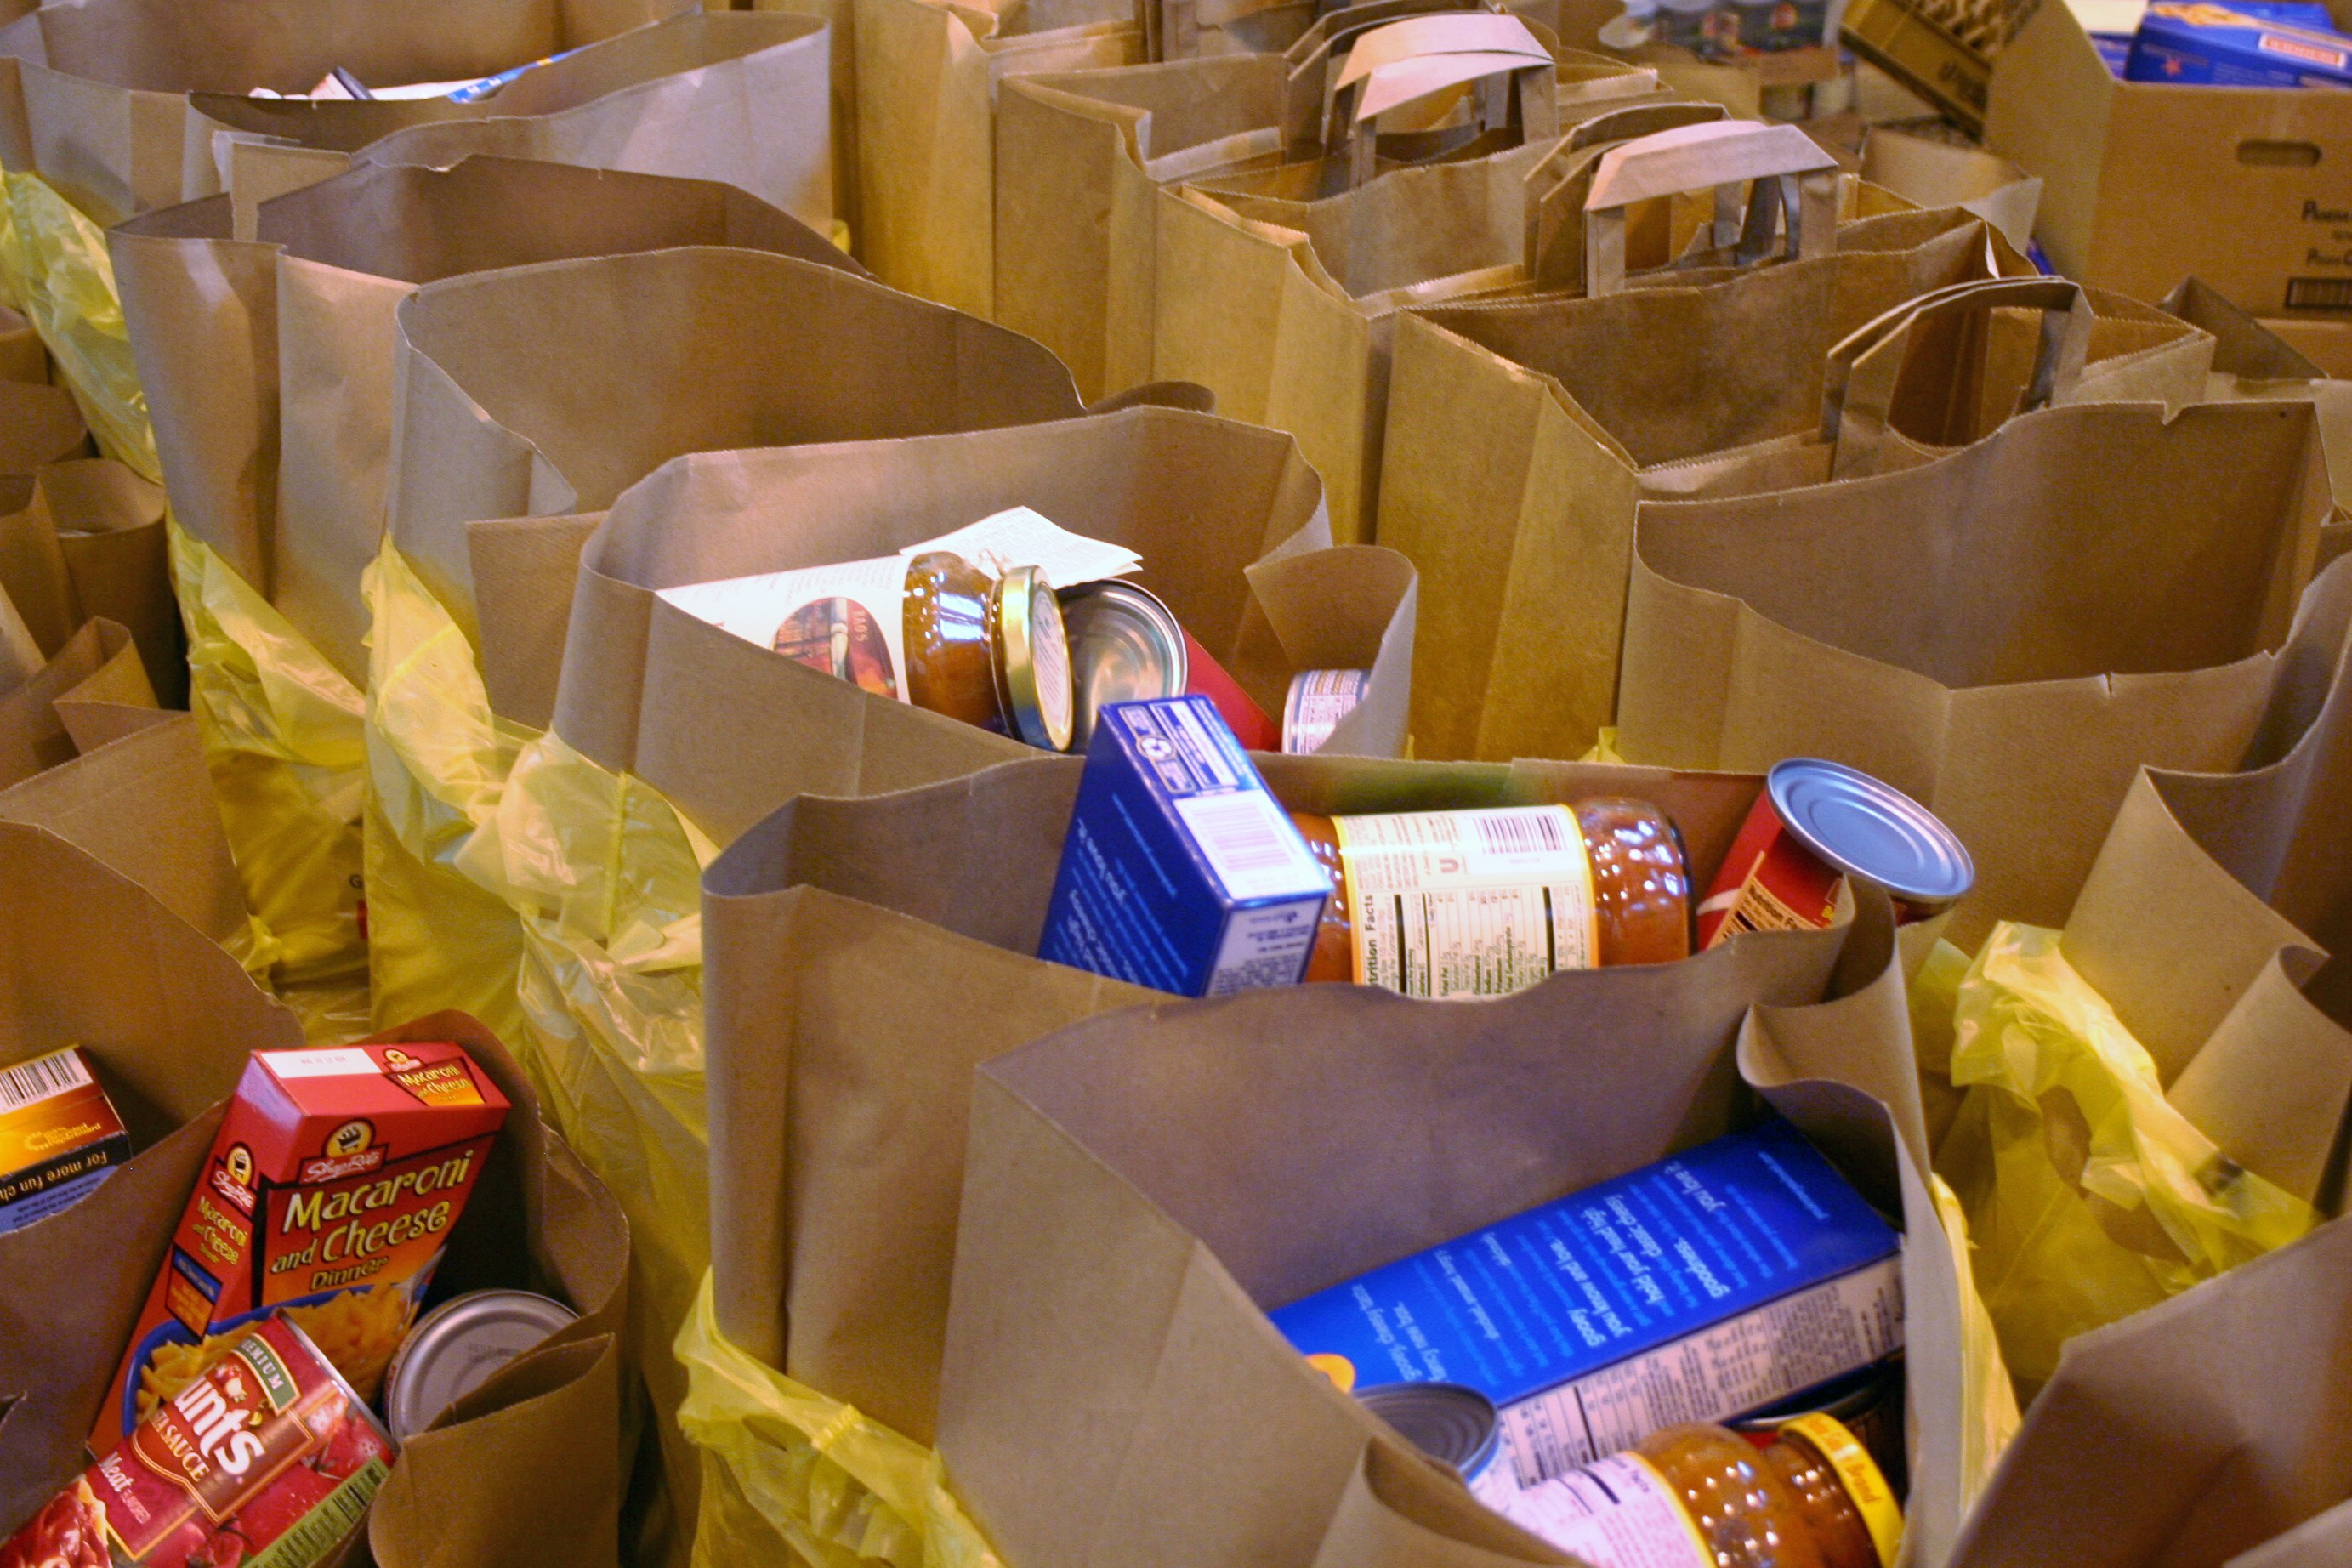 NJ FOODBANKS RECEIVE 31000 FROM COMMUNITY FOOD PANTRY CHECKOFF